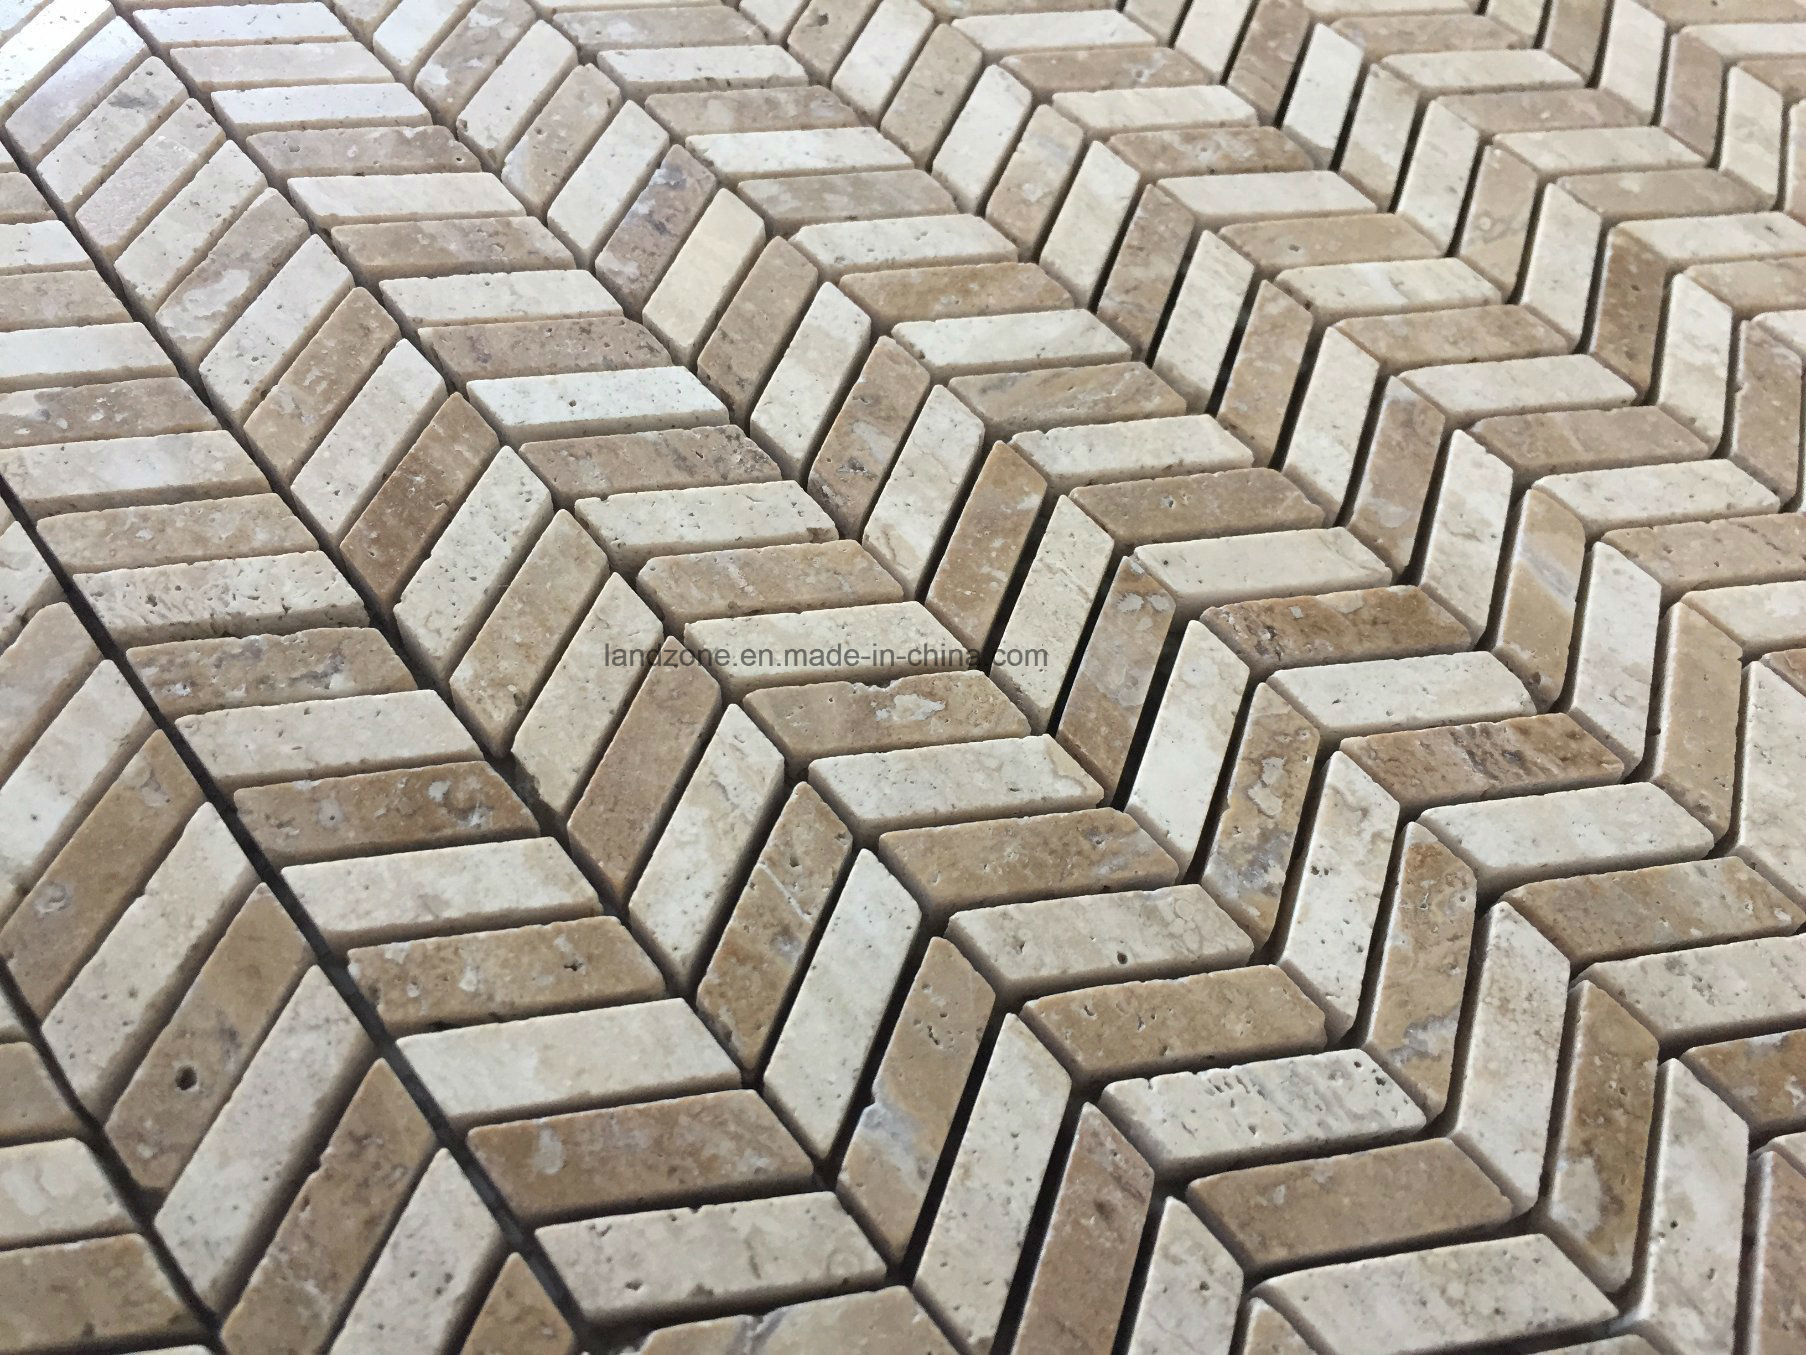 China Chevron Pattern Marble Mosaic Tile for Interior Wall Floor ...